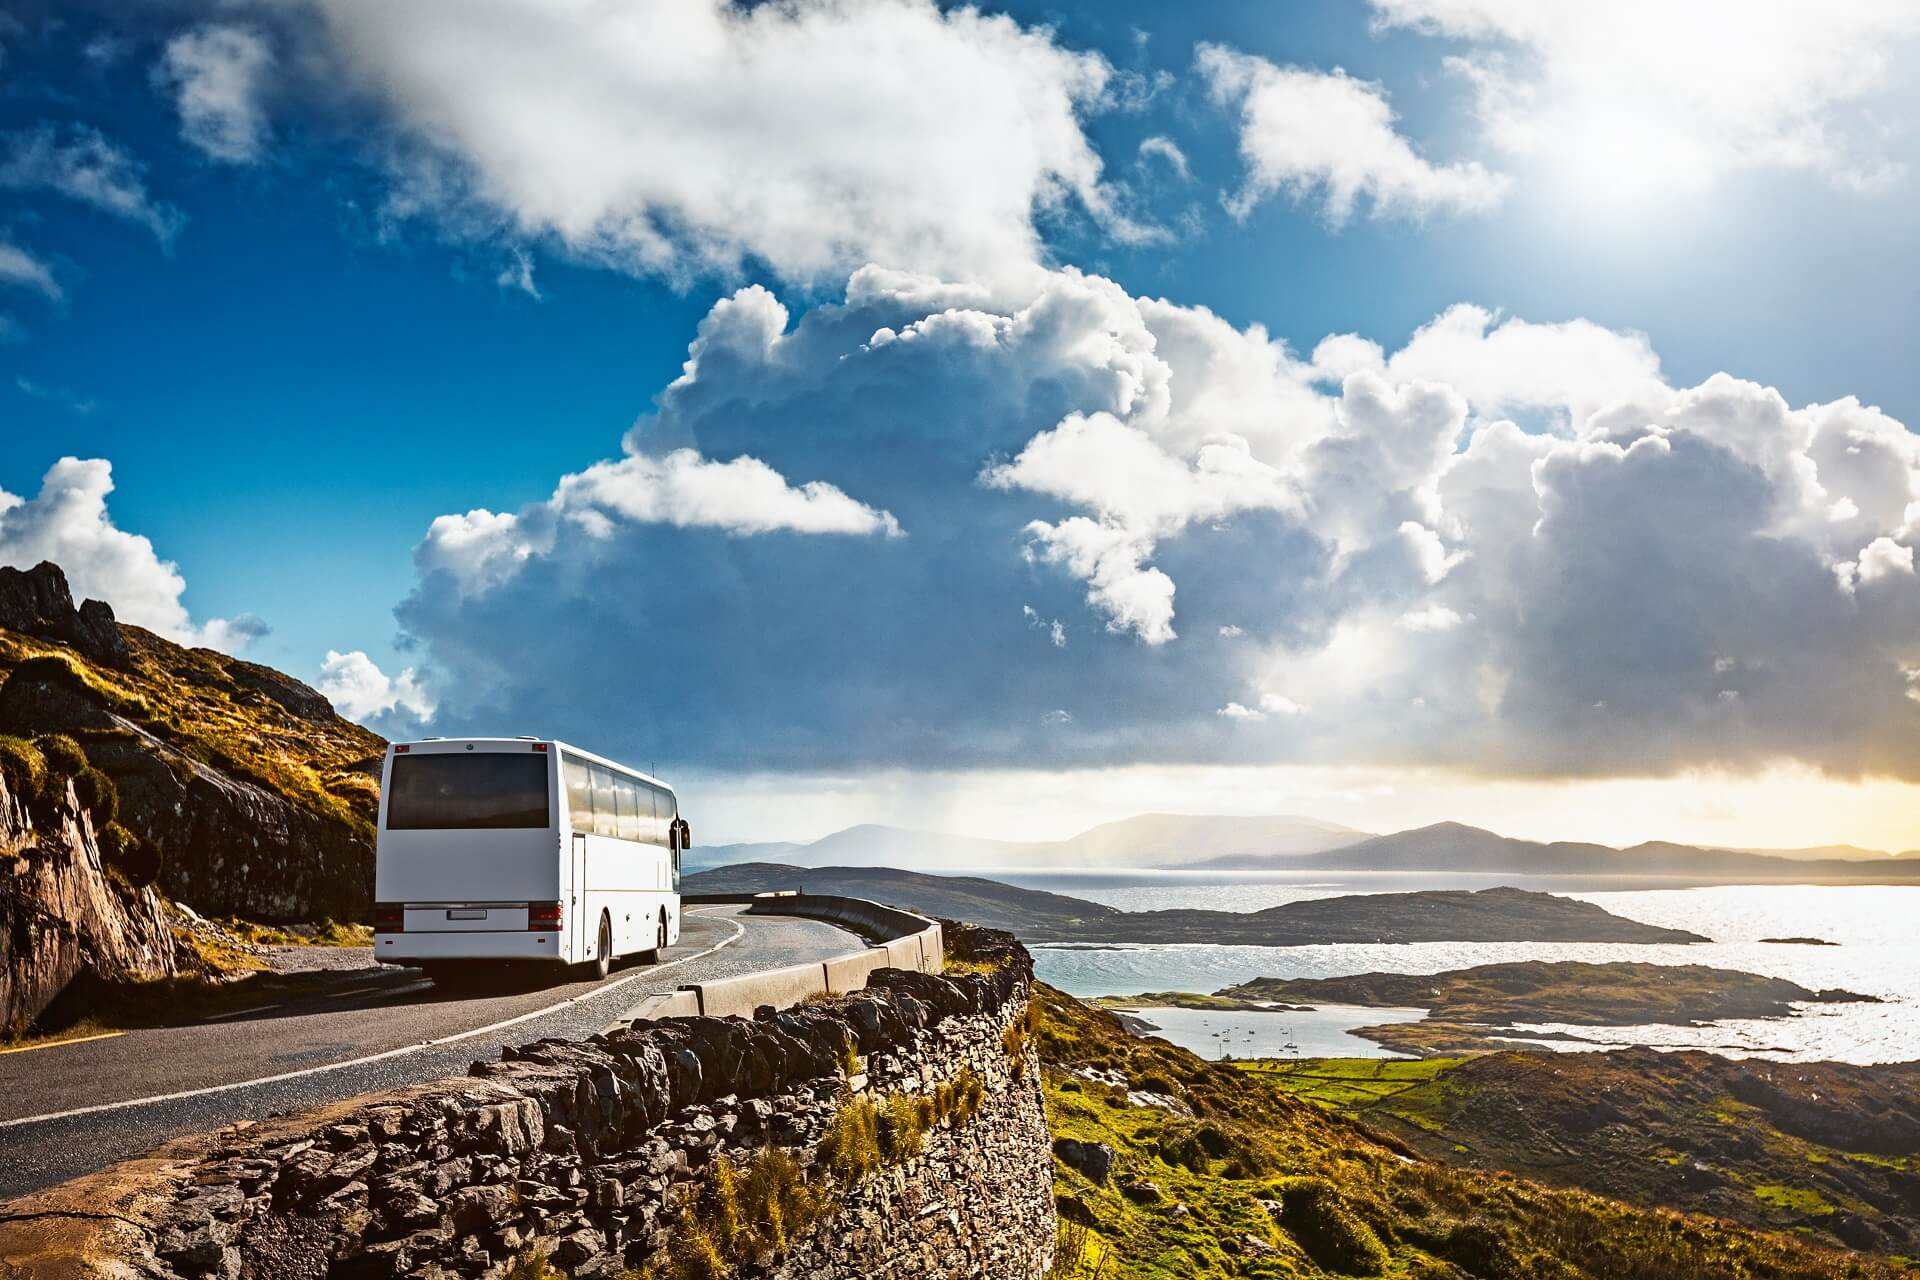 Panoramaküstenstraße Ring of Kerry, Irland